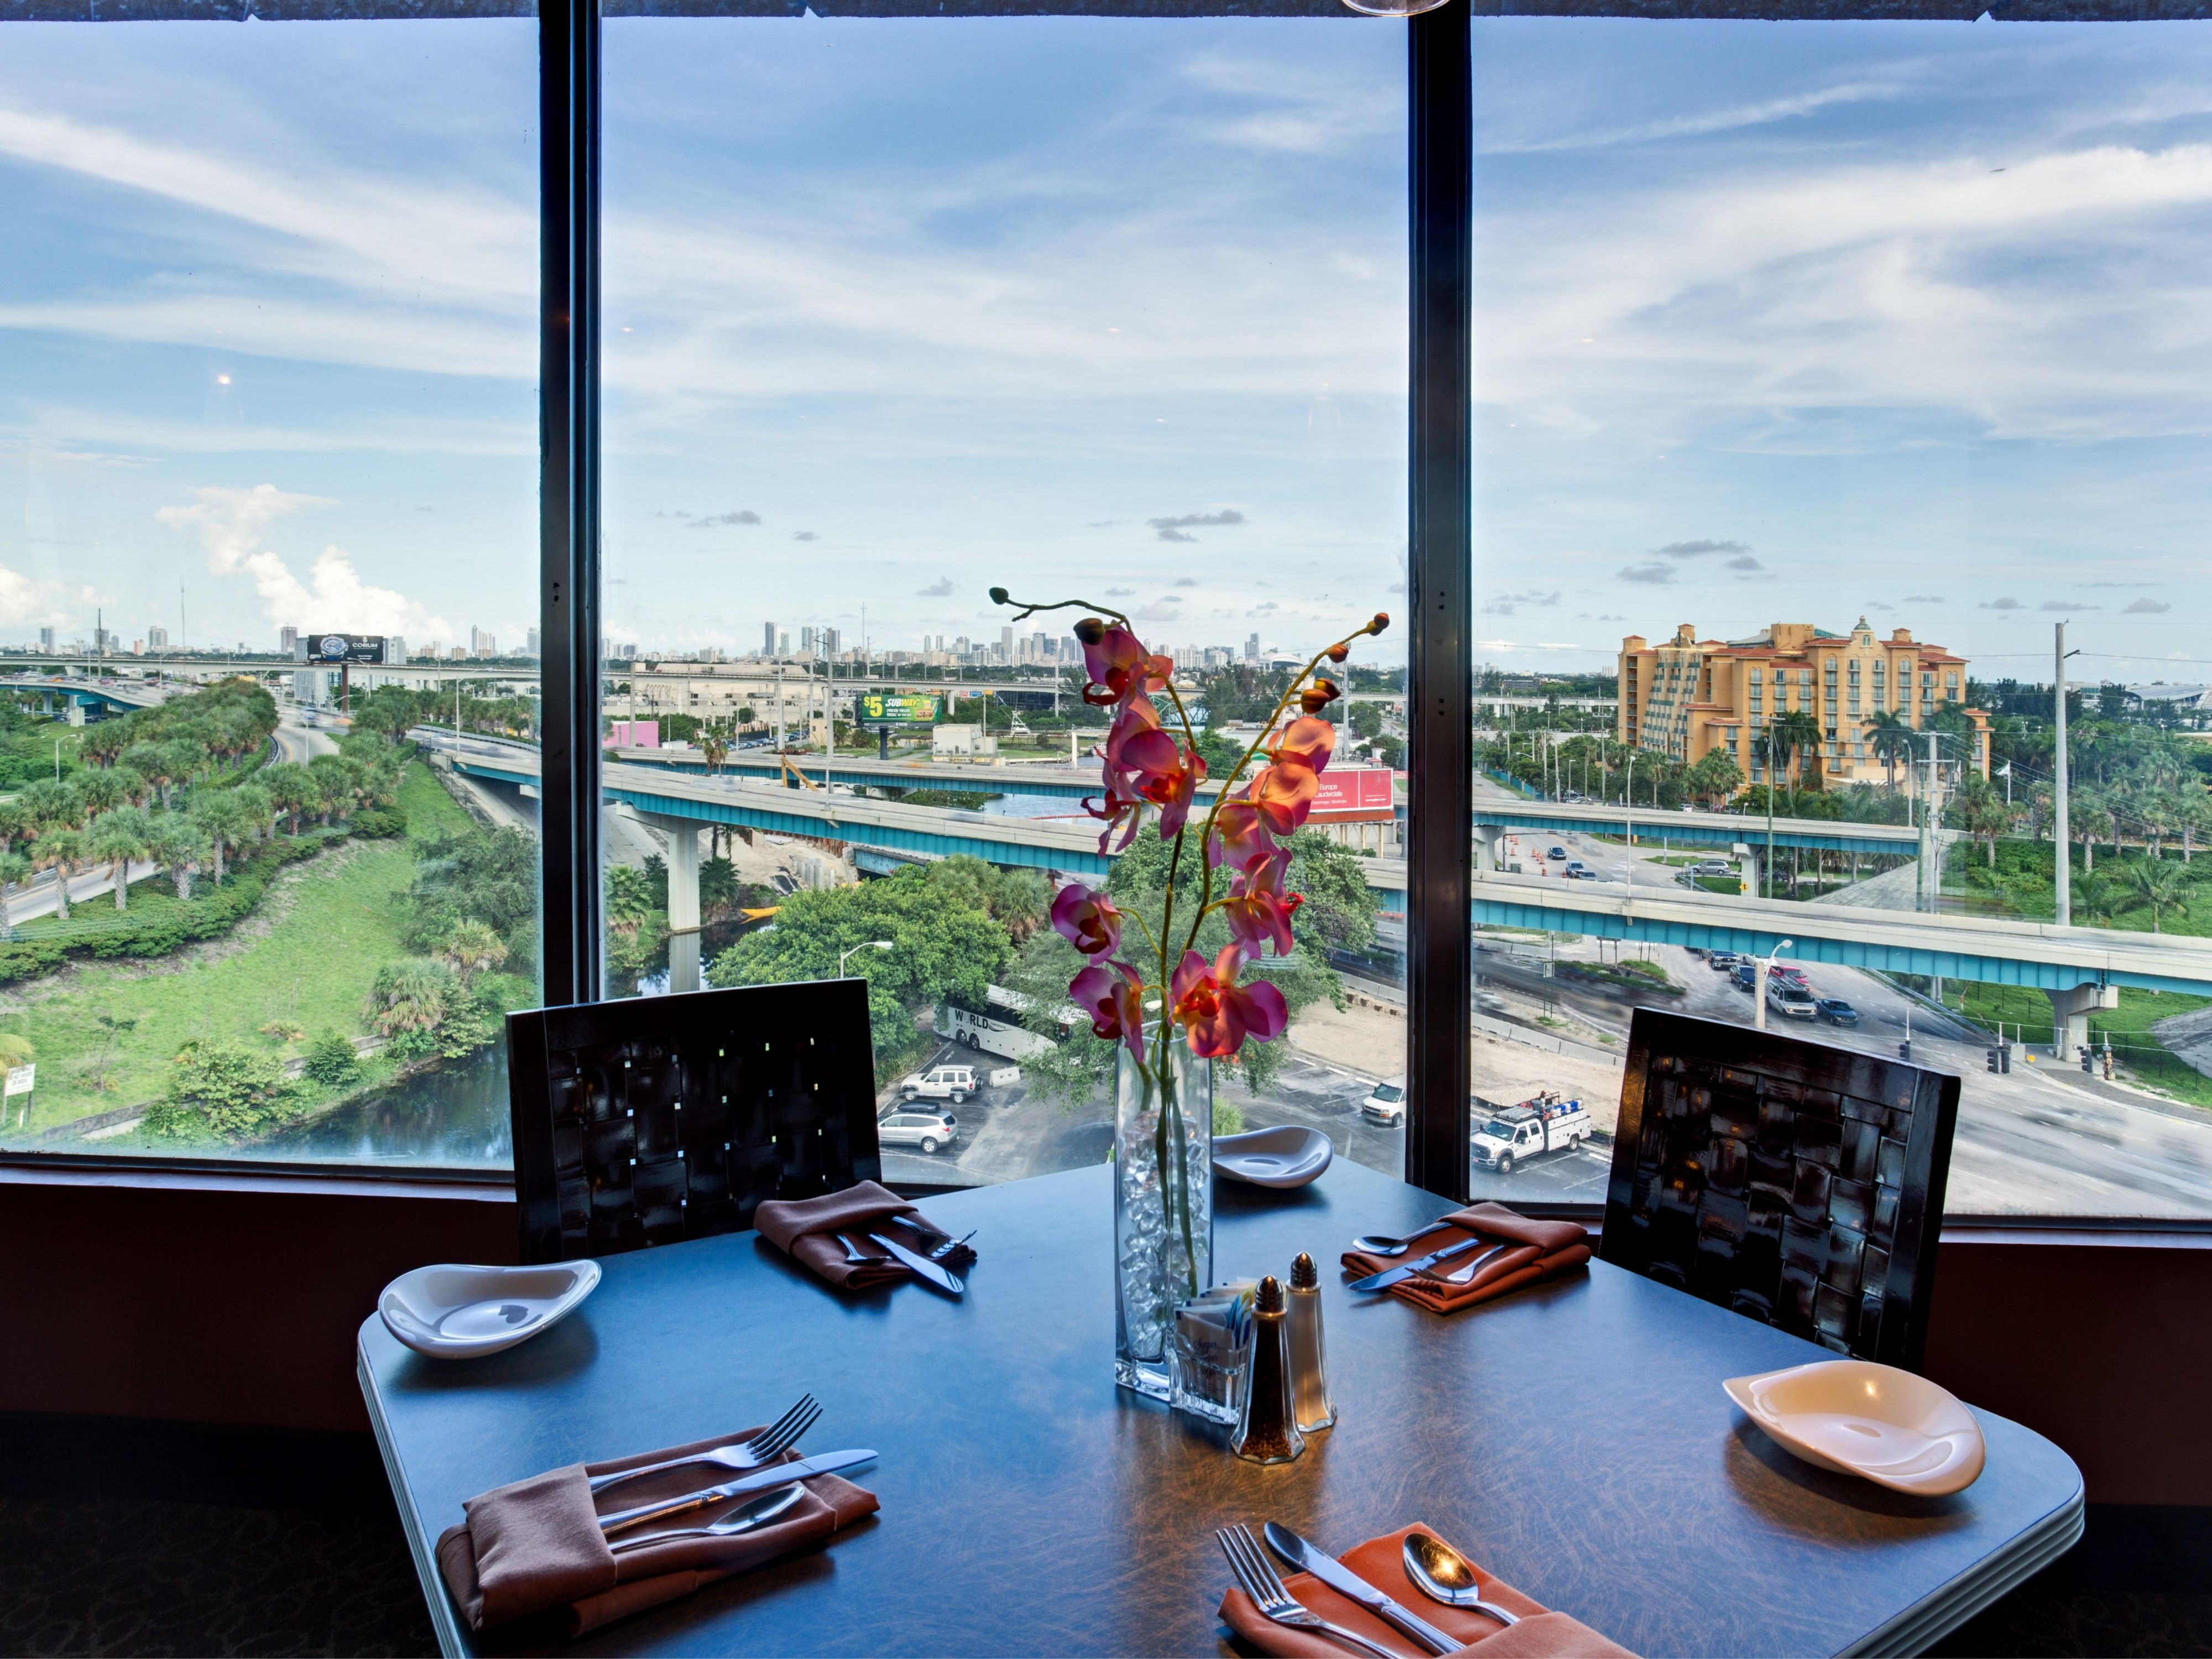 Enjoy Panoramic Views from our Full-Service Rooftop Restaurant